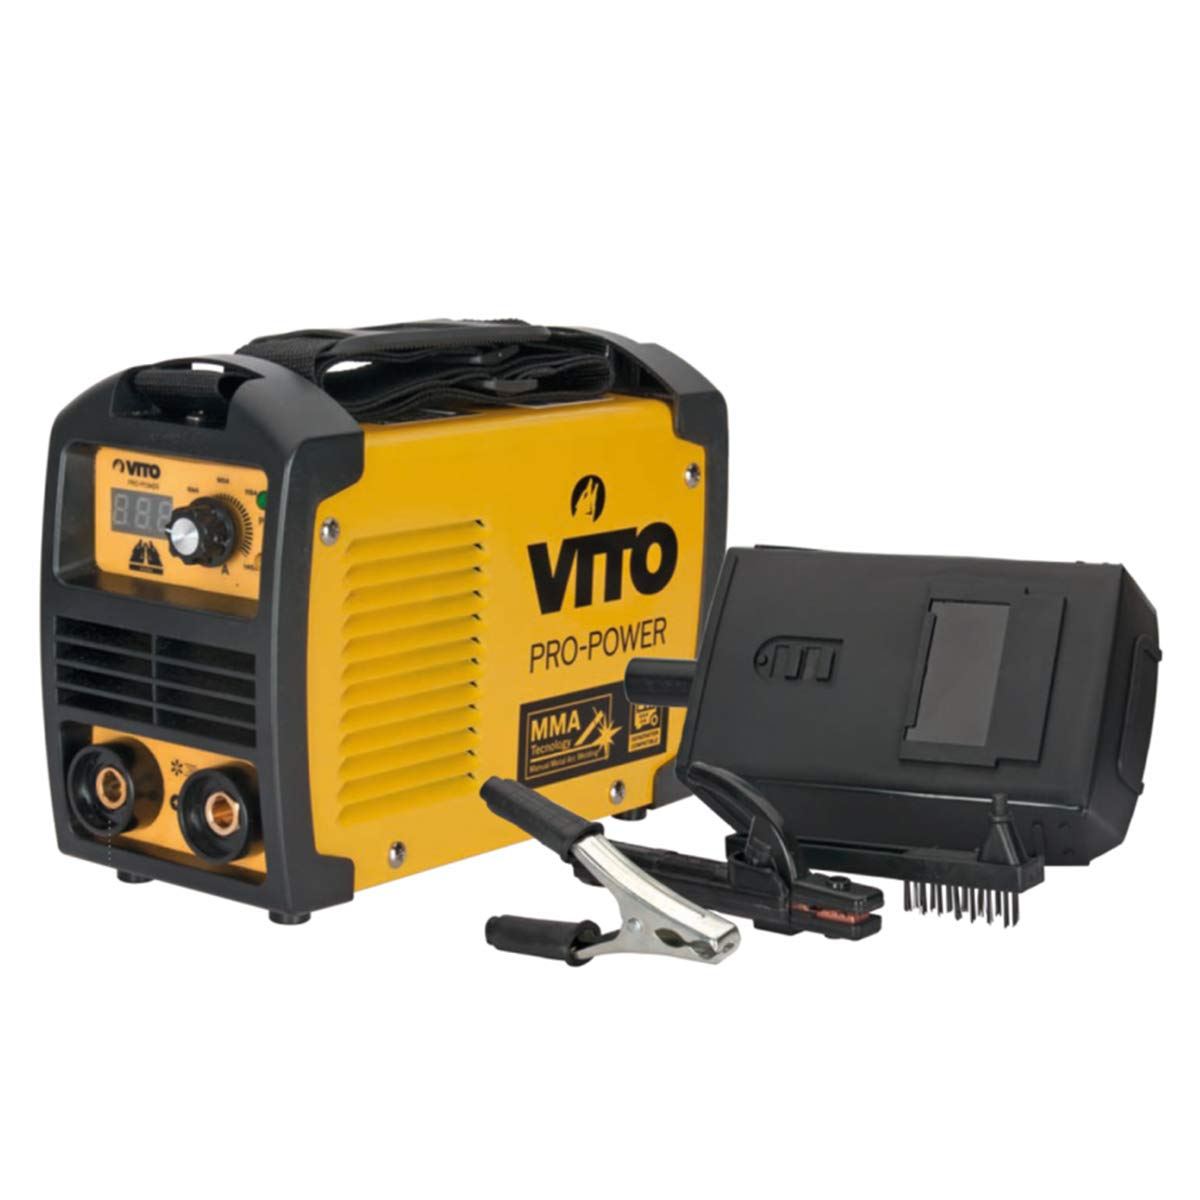 Vito Pro-Power Inverter 140 Digital Arc Soldering Soldering Station ...